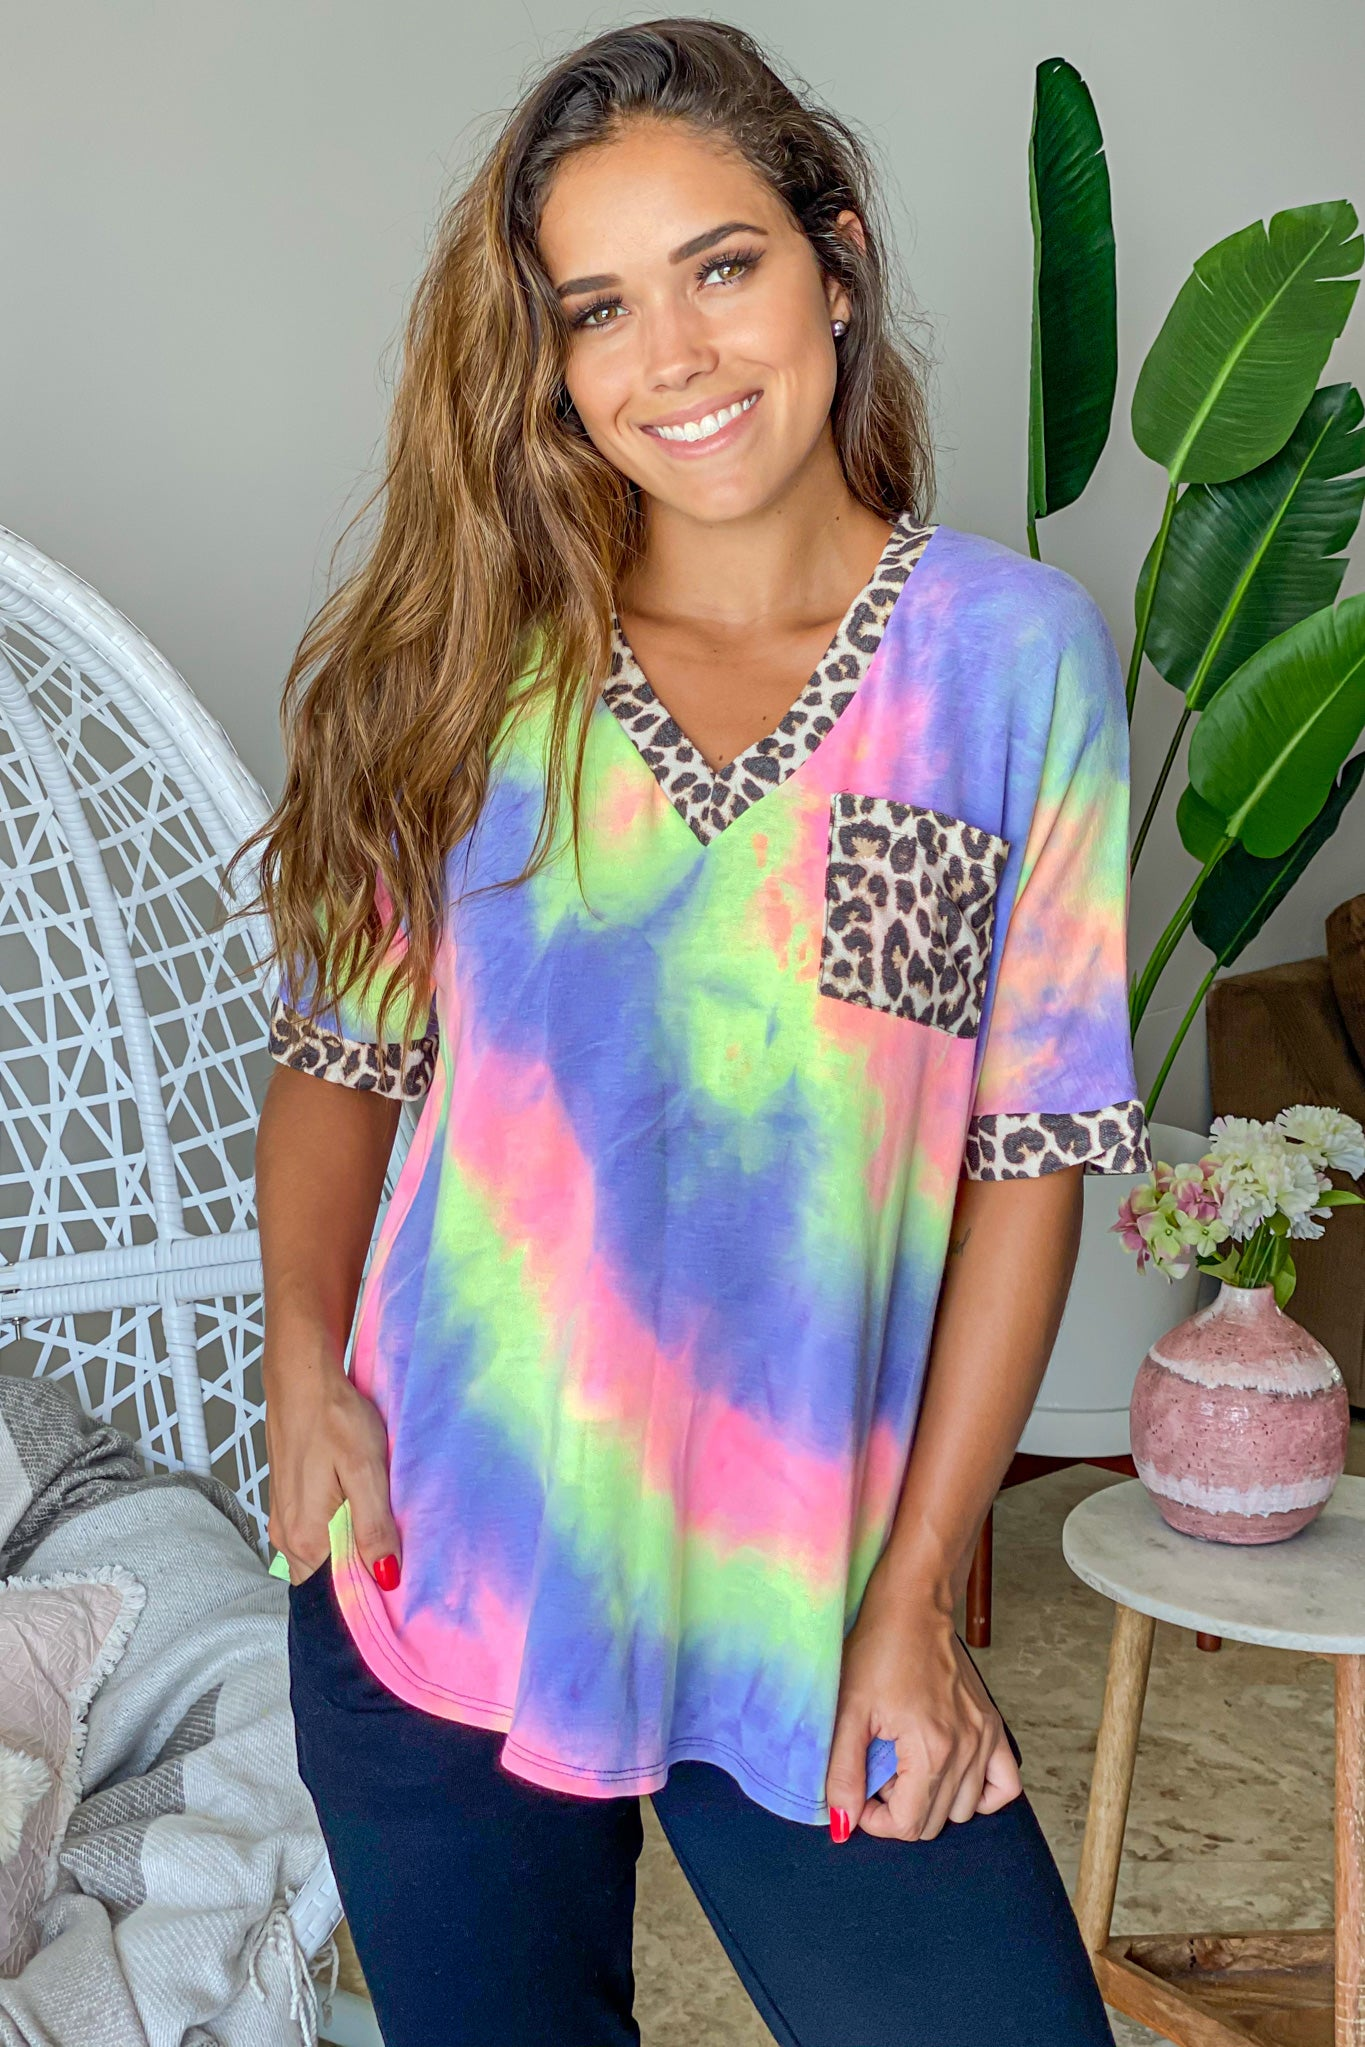 purple tie dye v-neck top with leopard details